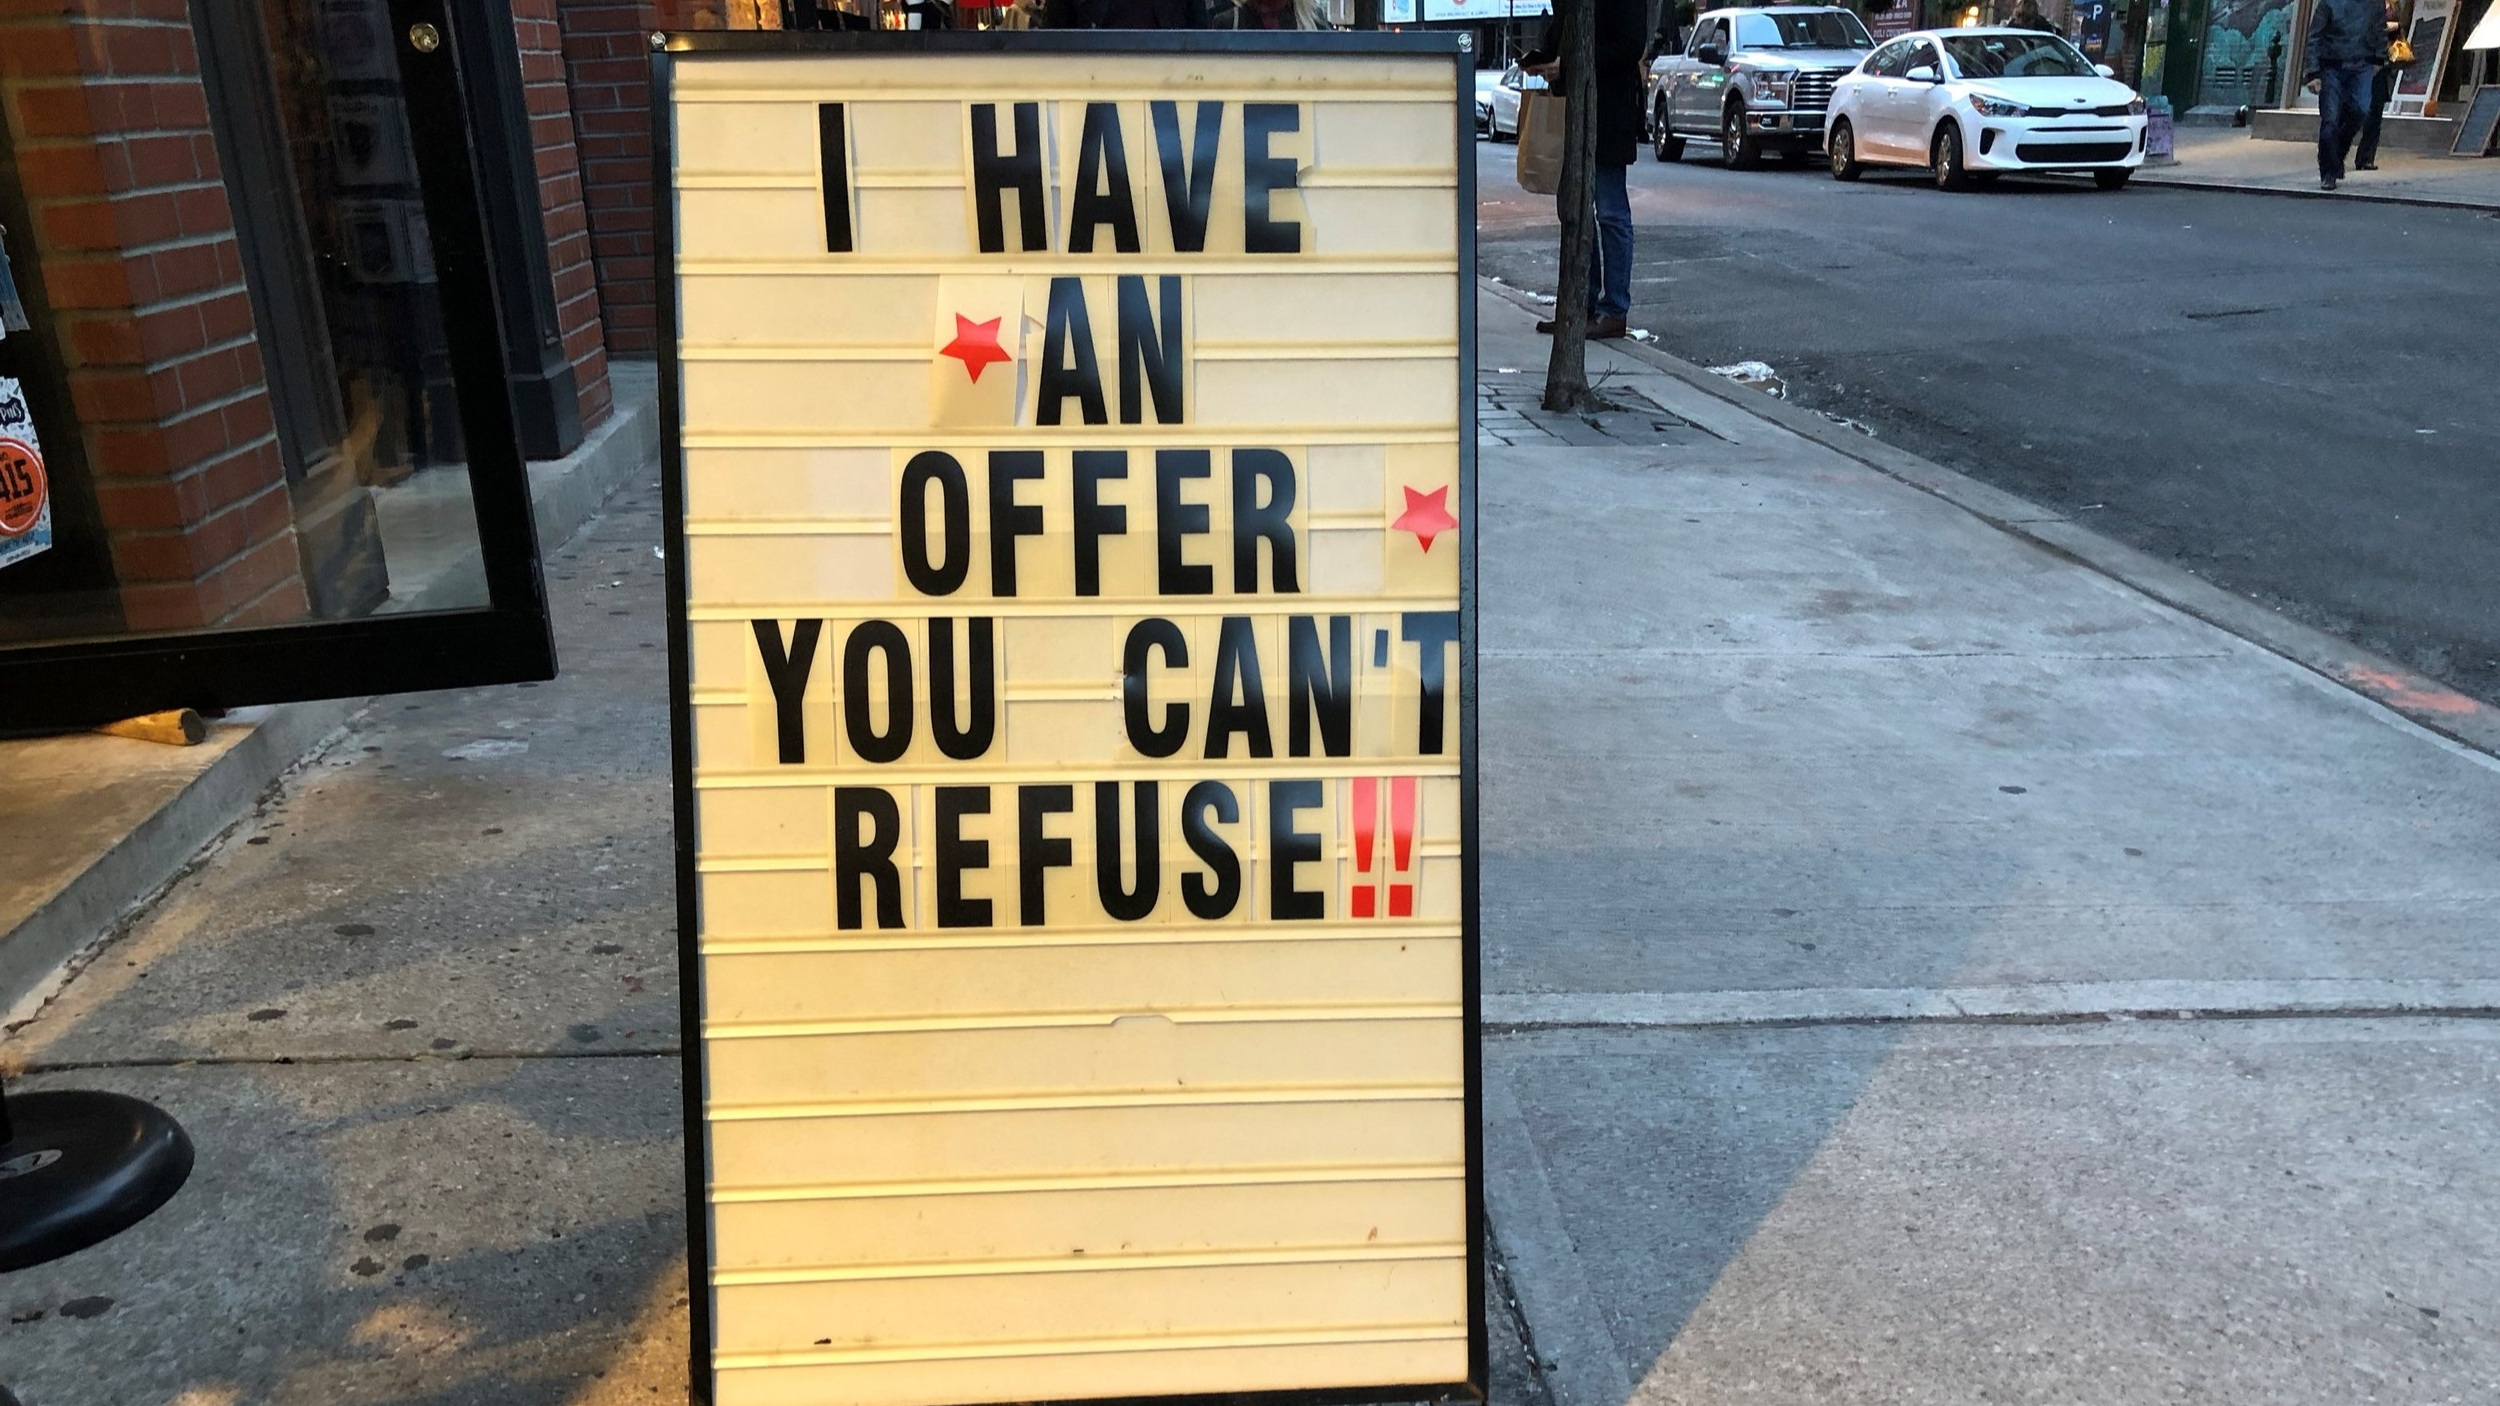 20190215+Offer+you+can%C2%B4t+refuse.jpg